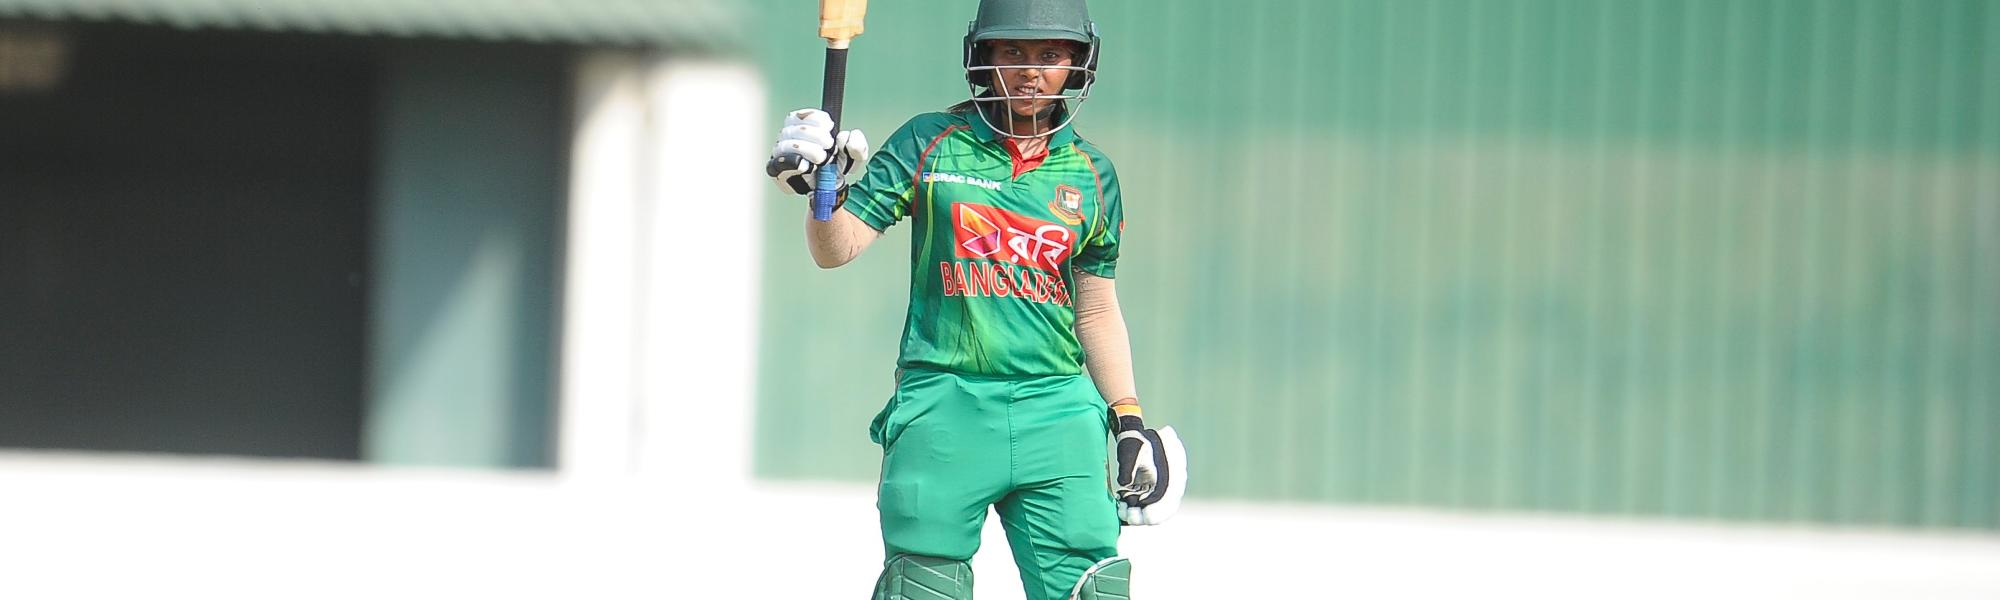 Sharmin Akhter scored 52 off 86 balls as Bangladesh Women chased the 145-run target in 39.1 overs